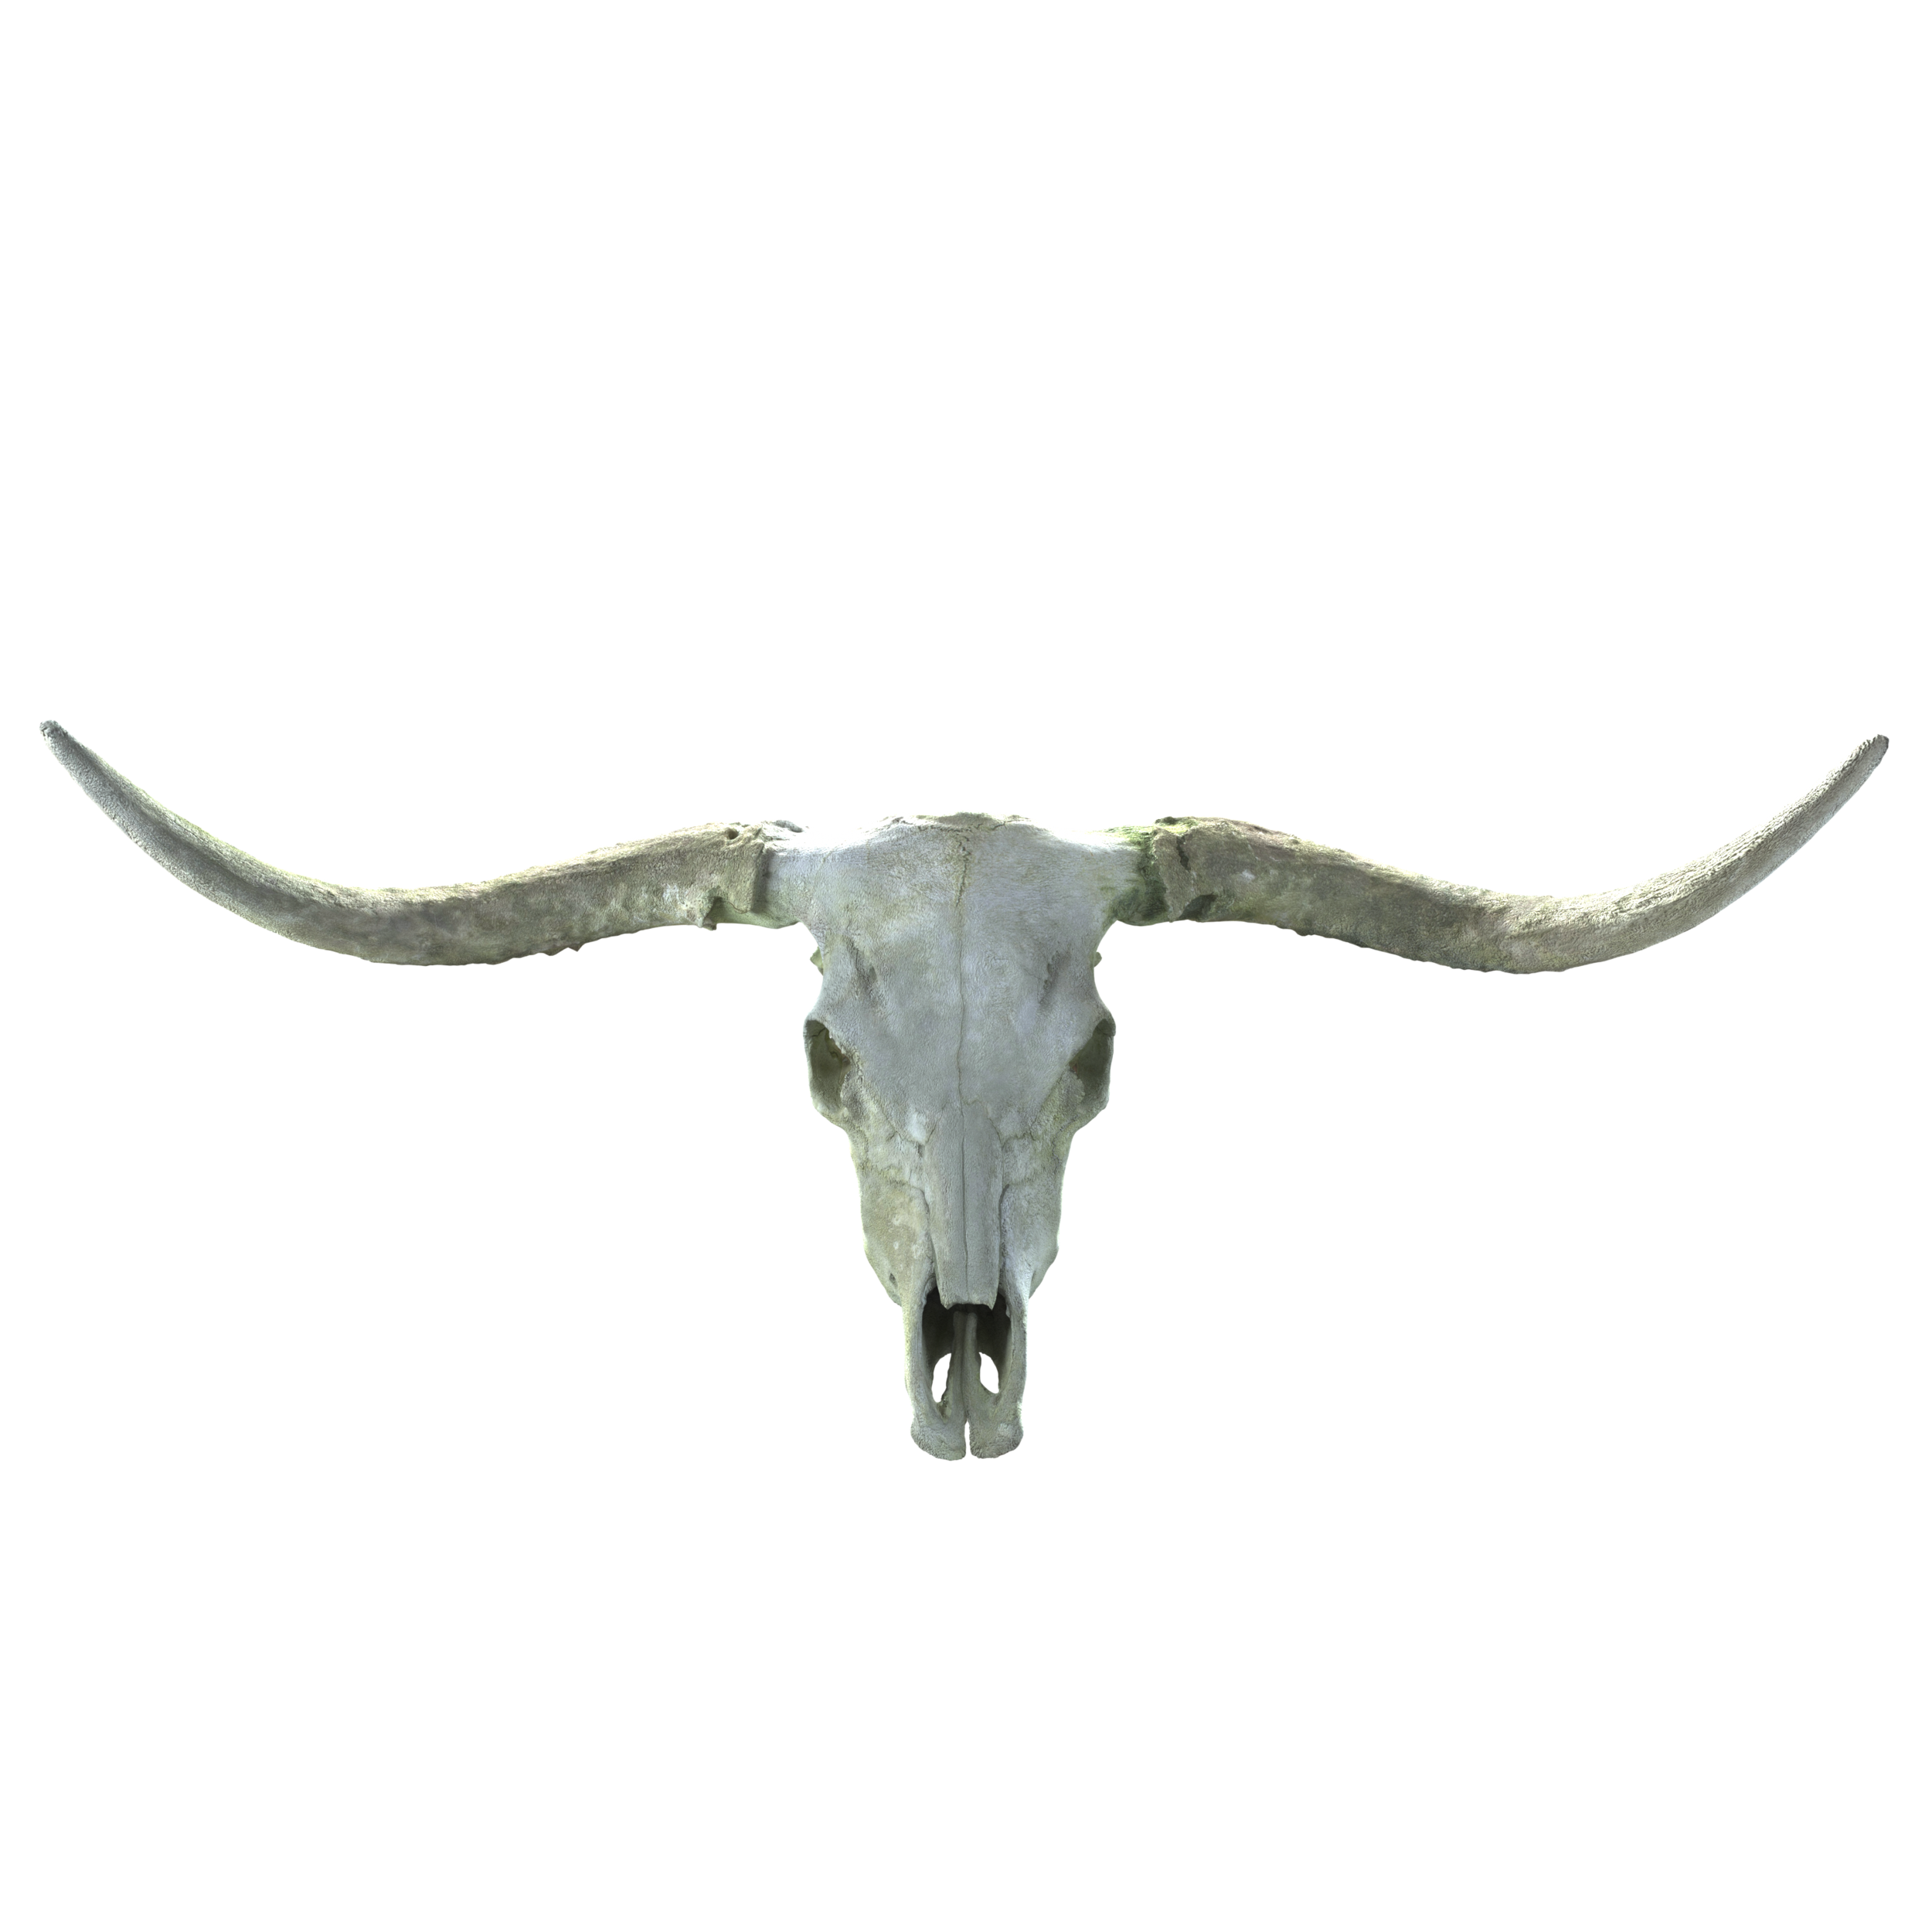 LONG HORN SKULL MODEL - This photo scanned model Pack Includes:-5 OBJ format models-levels of detail from 1200-450,000 polygons.-Diffuse,Normal,Height,Bump, and roughness maps-A c4d File including an Octane material ready to go, Just drag and drop the included textures